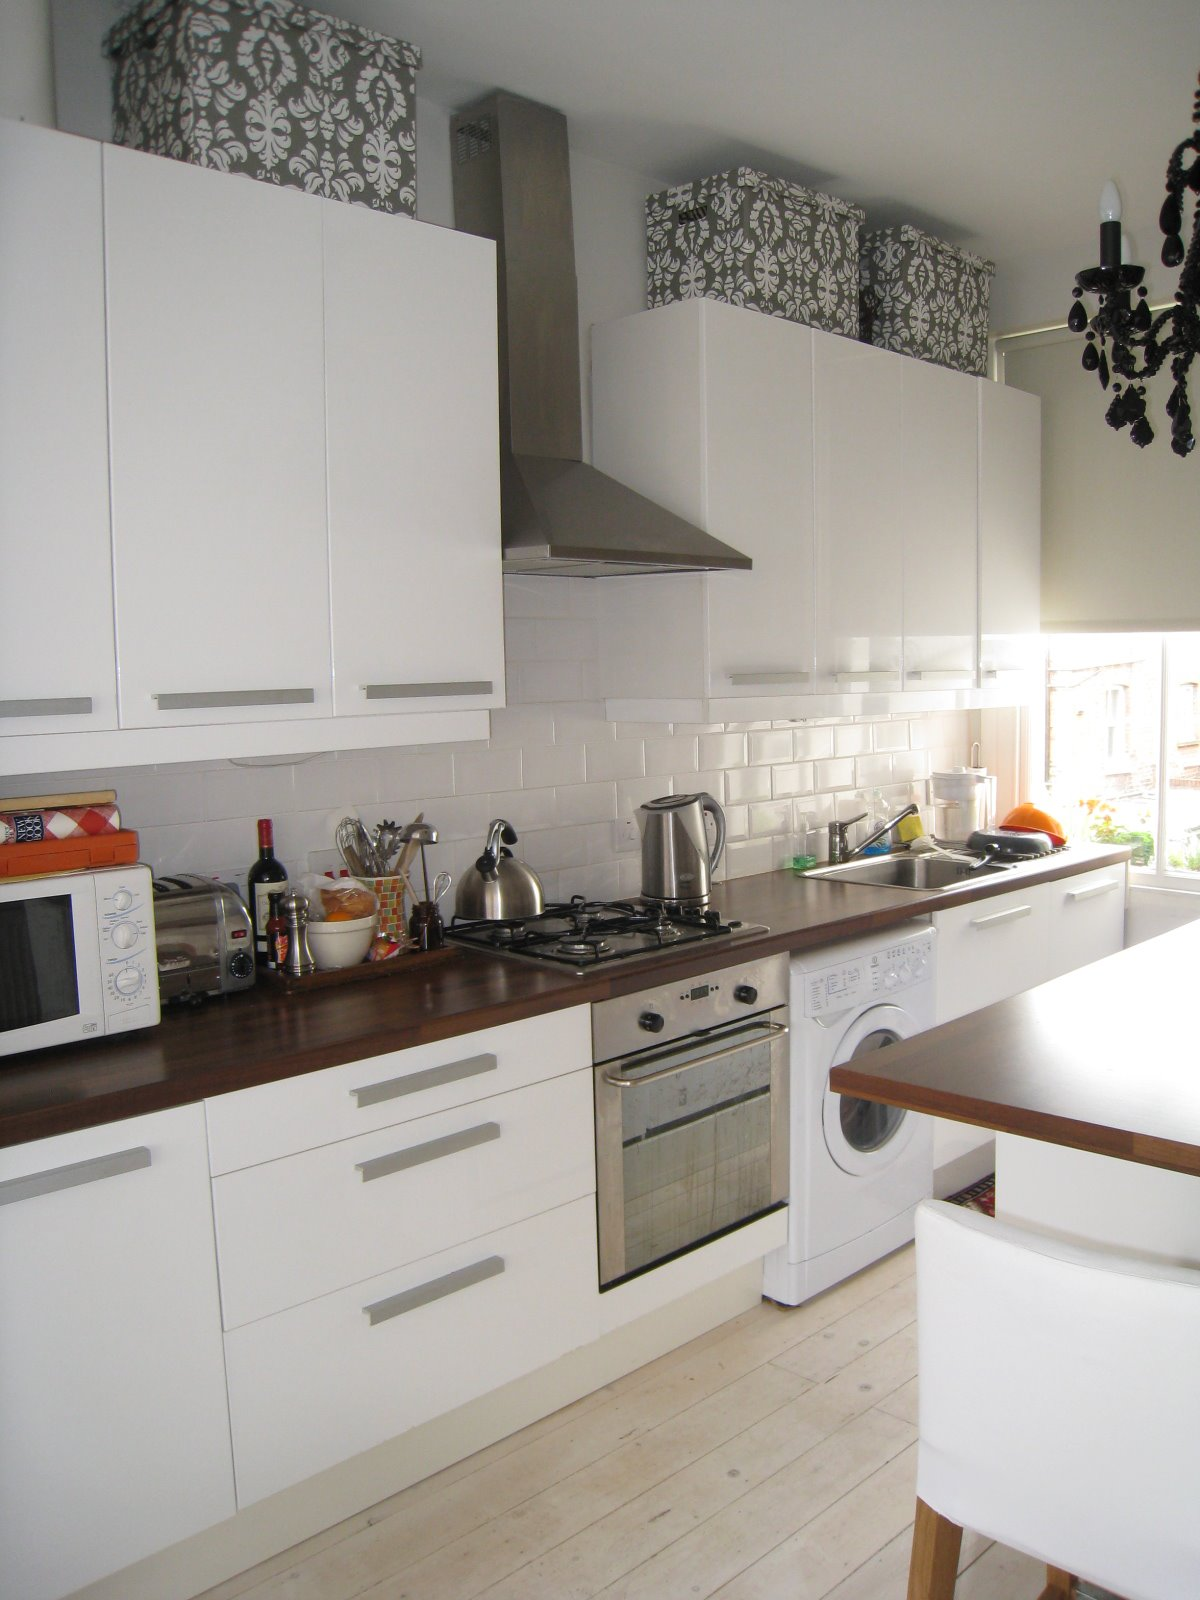 Kitchen Cabinets For Sale London A Taste For Space Saving Style In A Small But Fab London